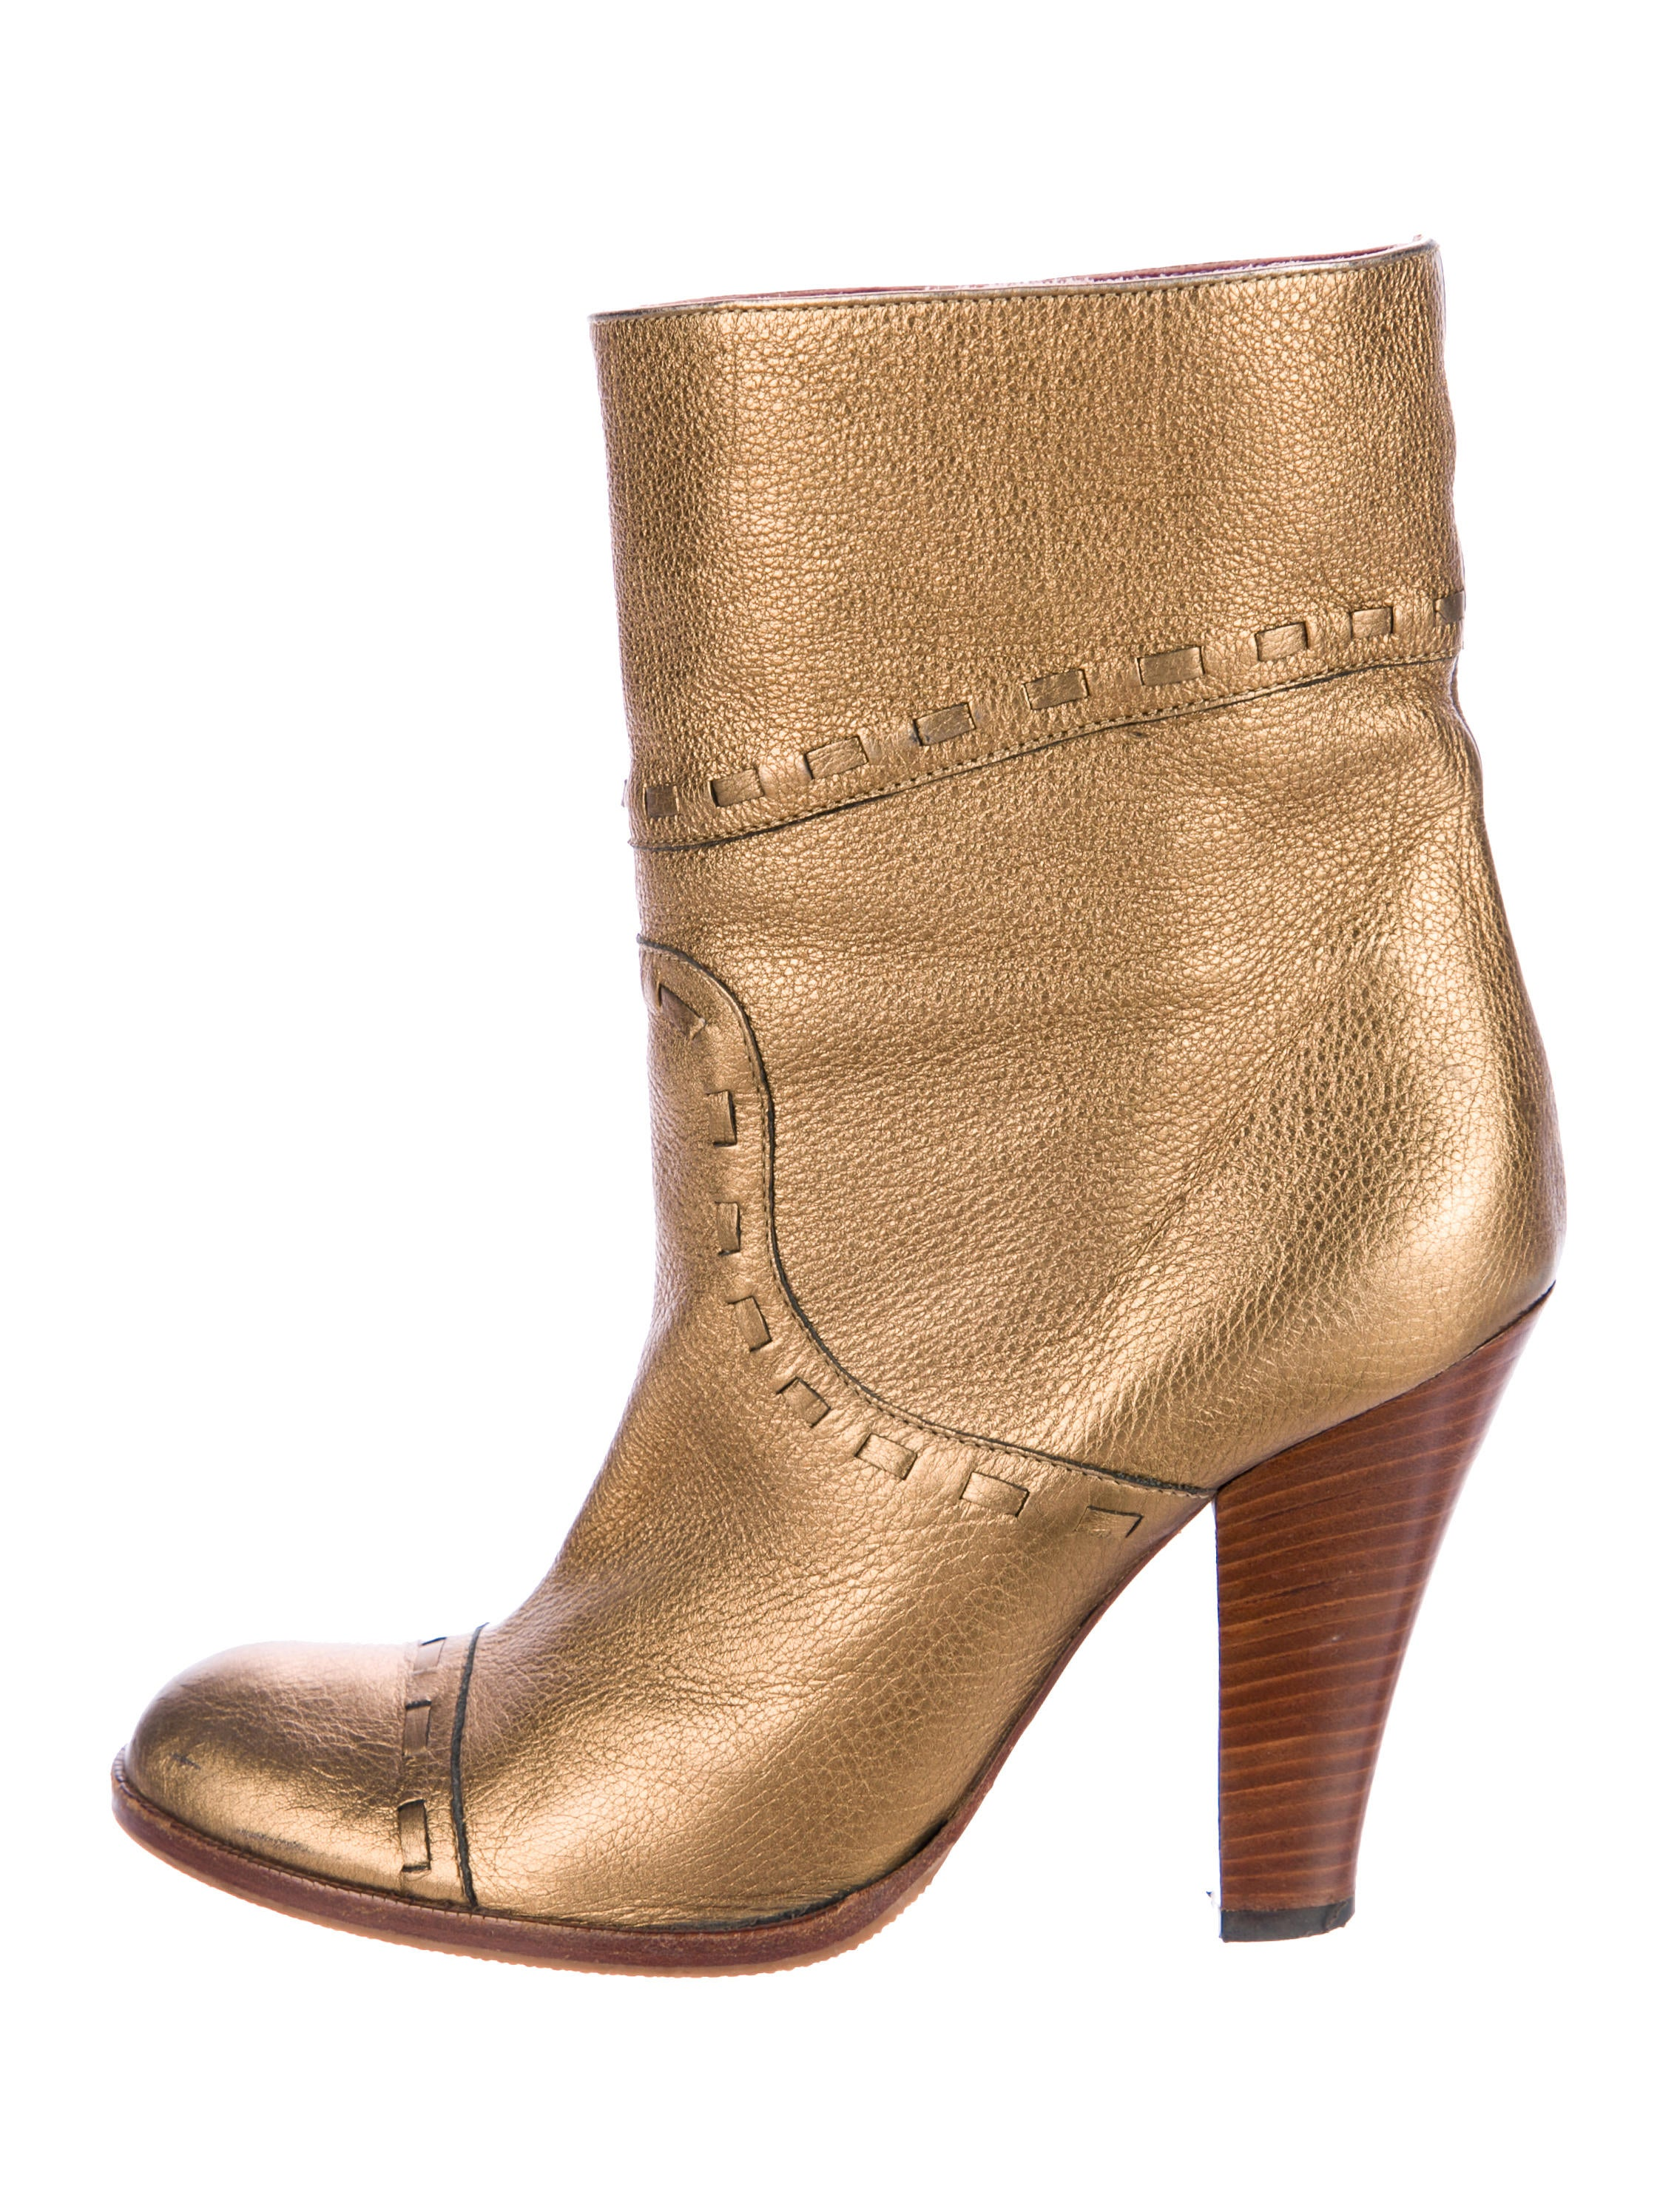 Metallic Leather Boots : Marc jacobs metallic leather ankle boots shoes